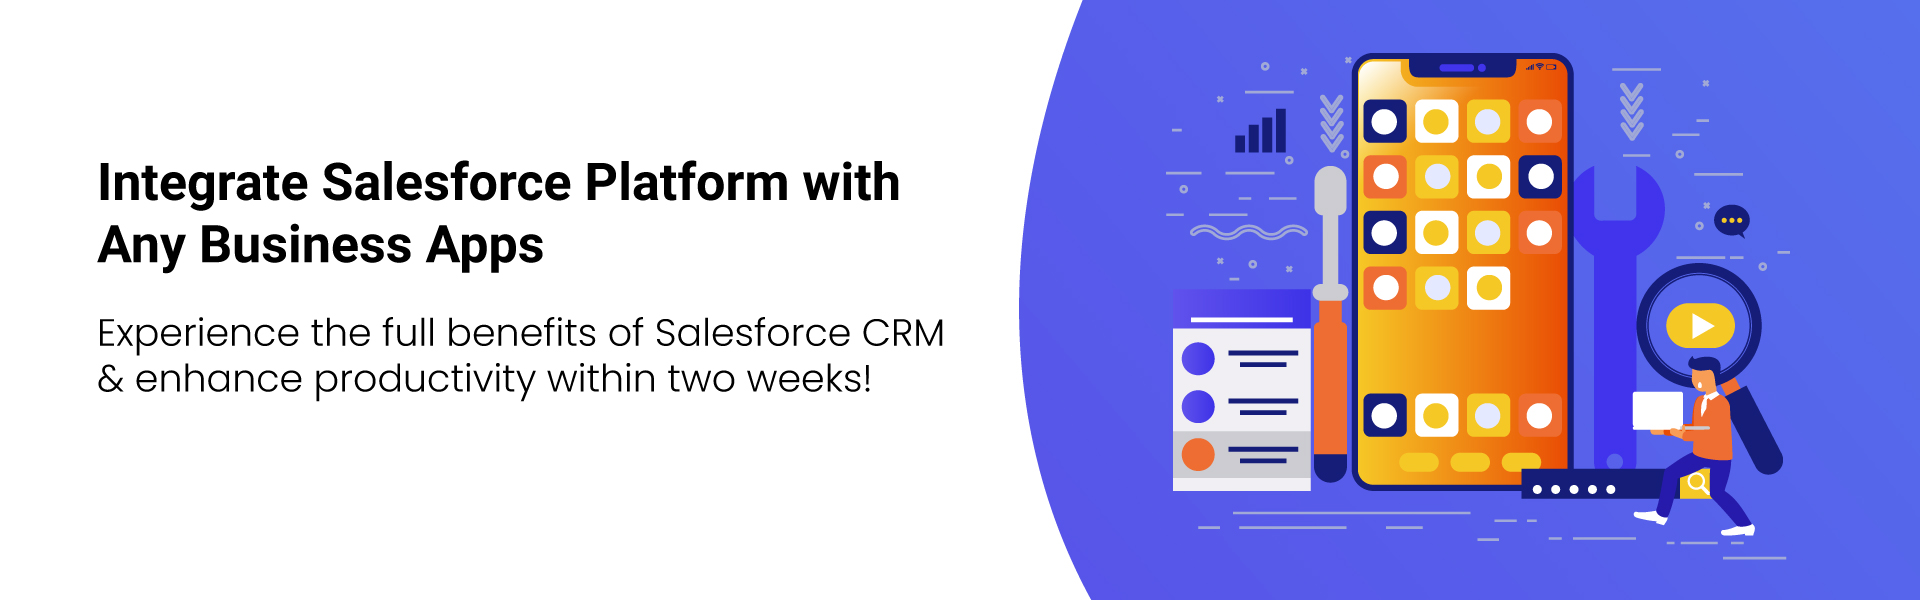 Experience-the-full-benefits-of-Salesforce-CRM-&-enhance-productivity-within-two-weeks!